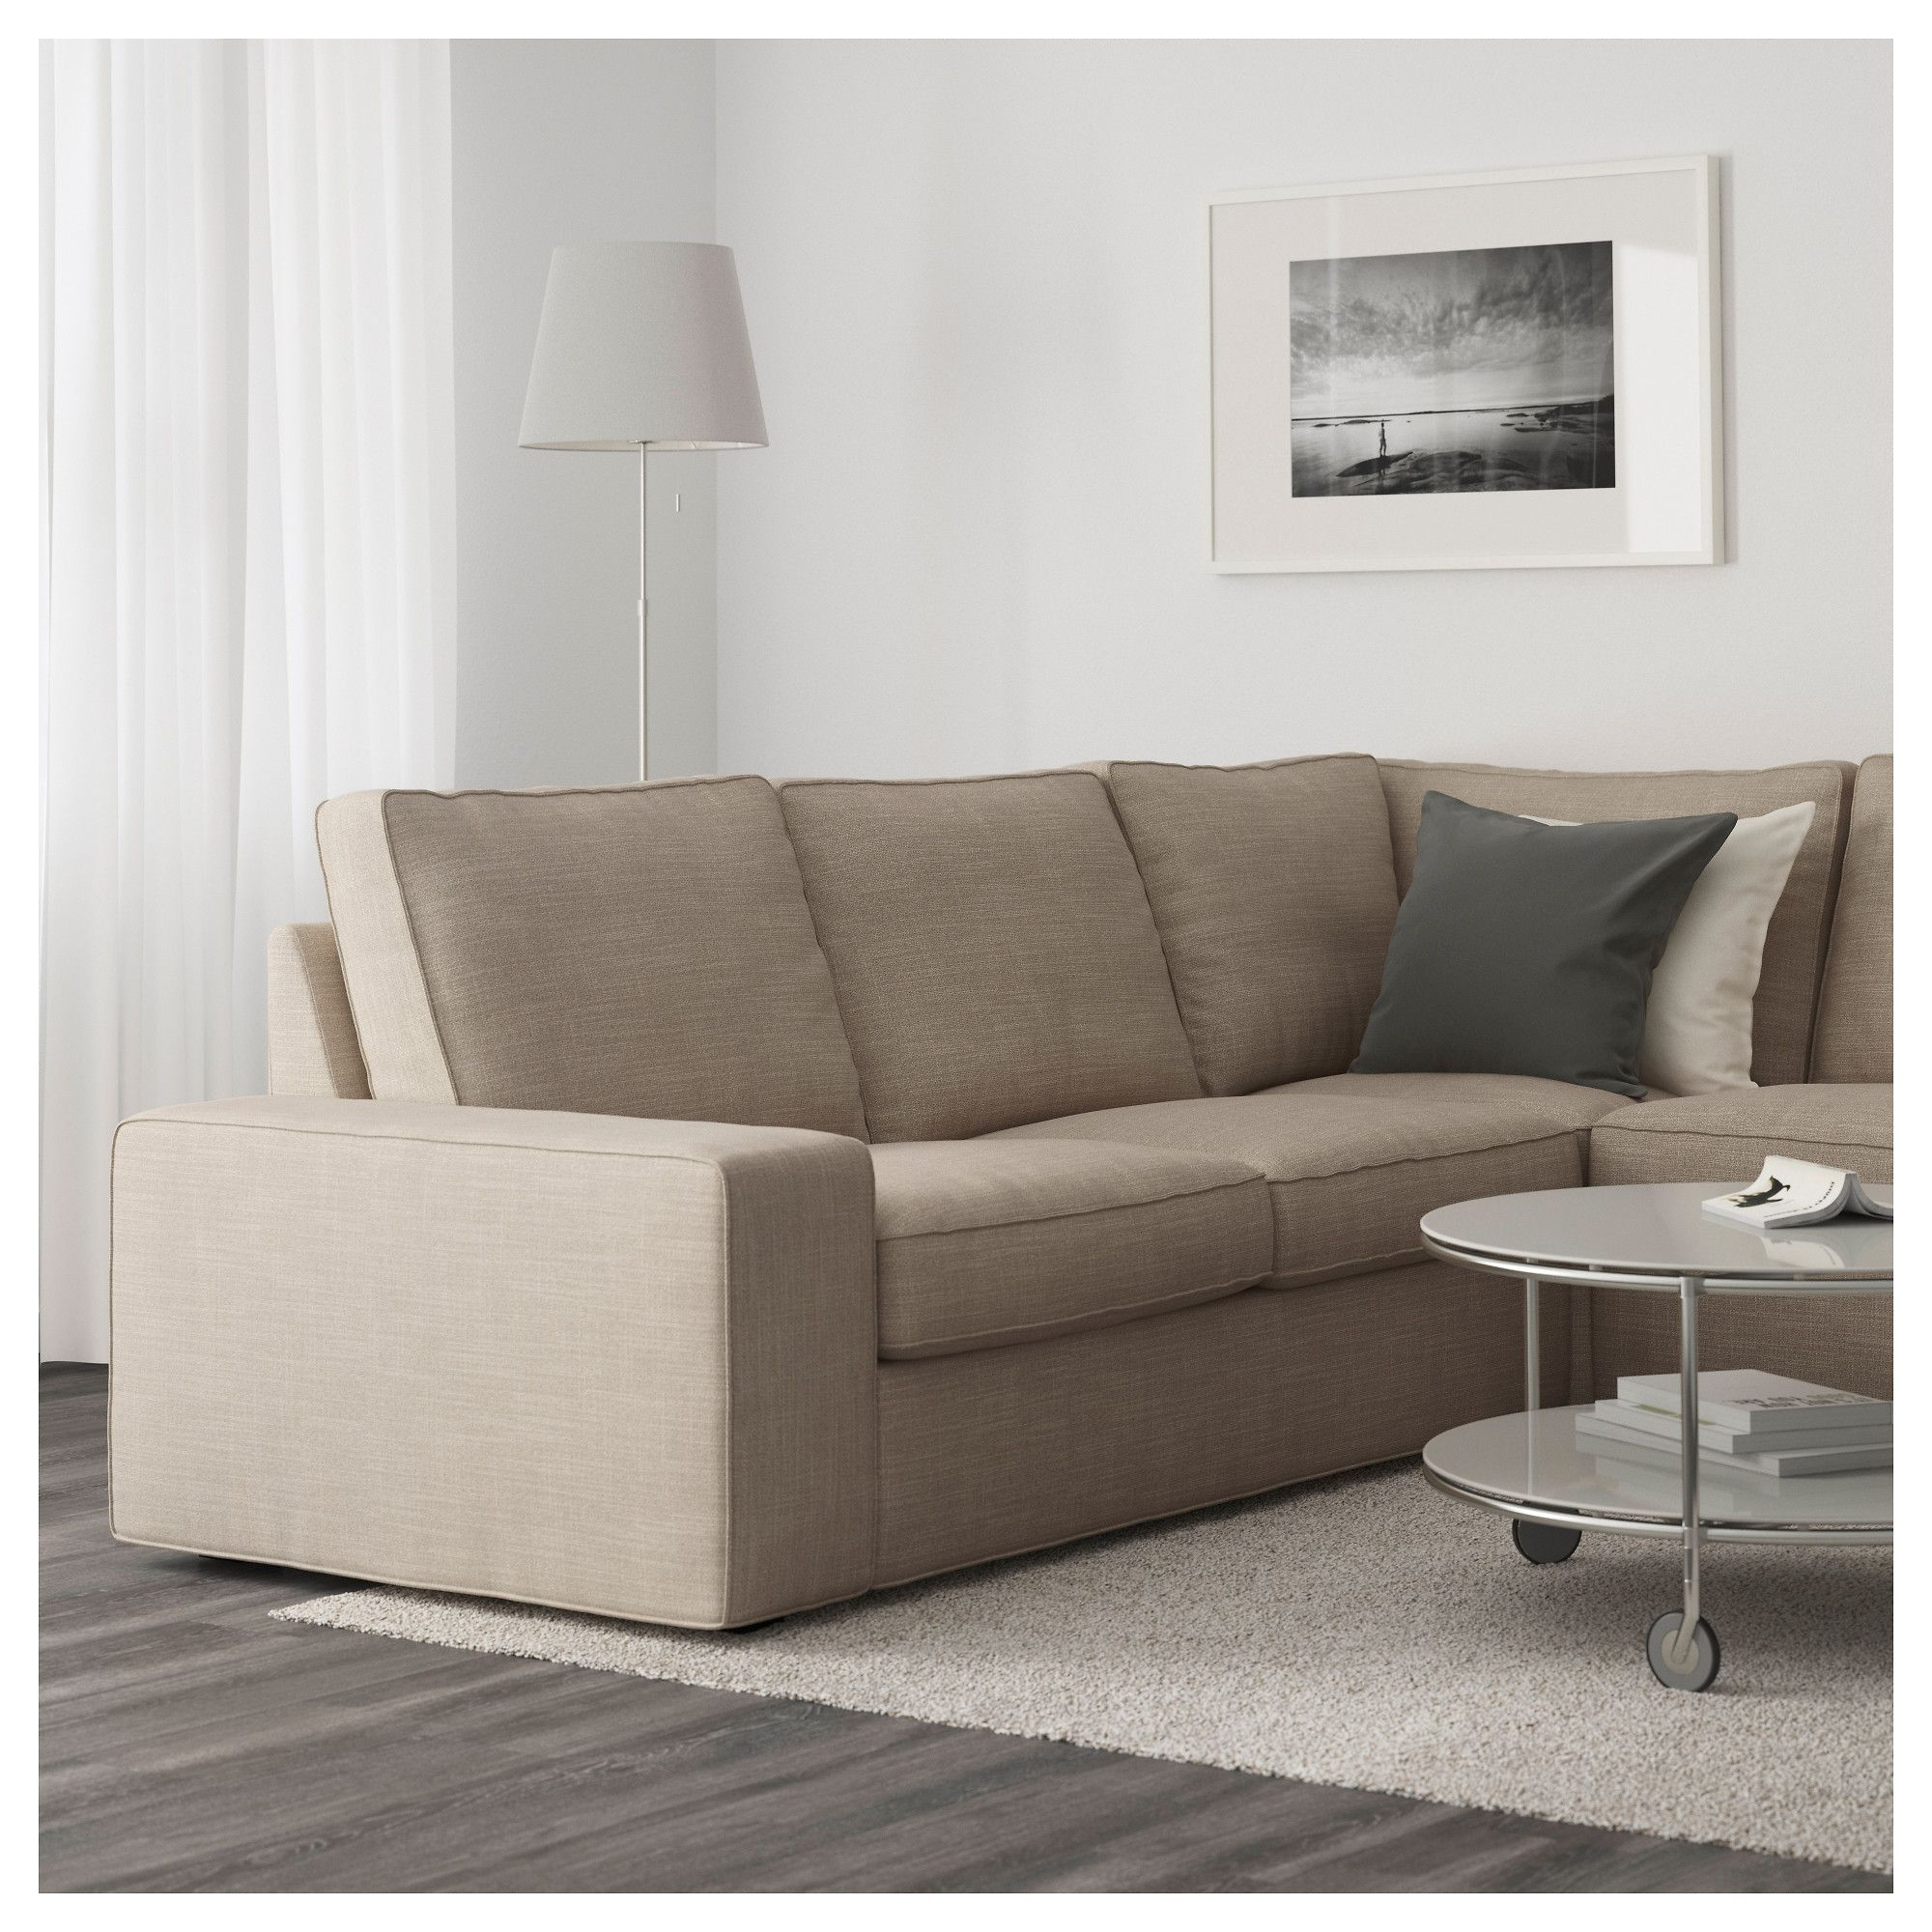 kivik sectional 5seat corner  hillared with chaise